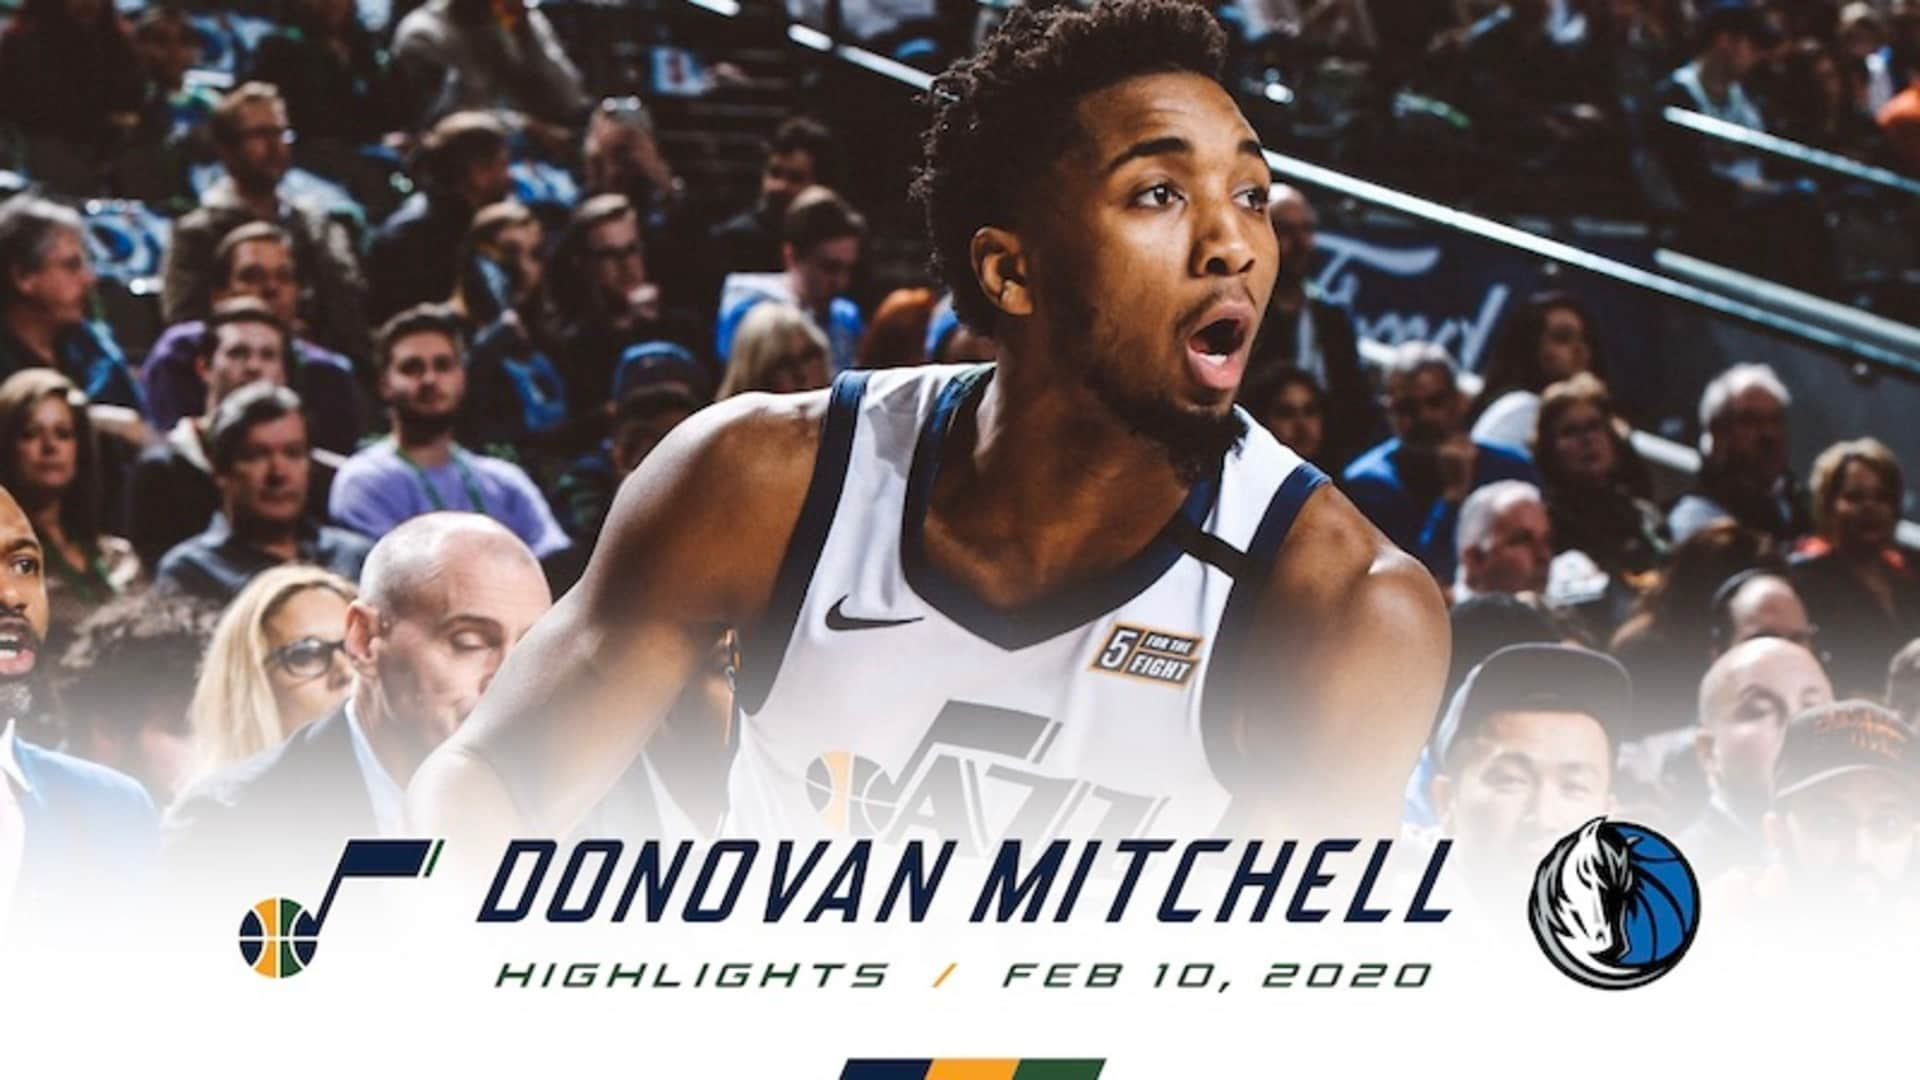 Highlights: Donovan Mitchell — 23 points, 4 rebounds